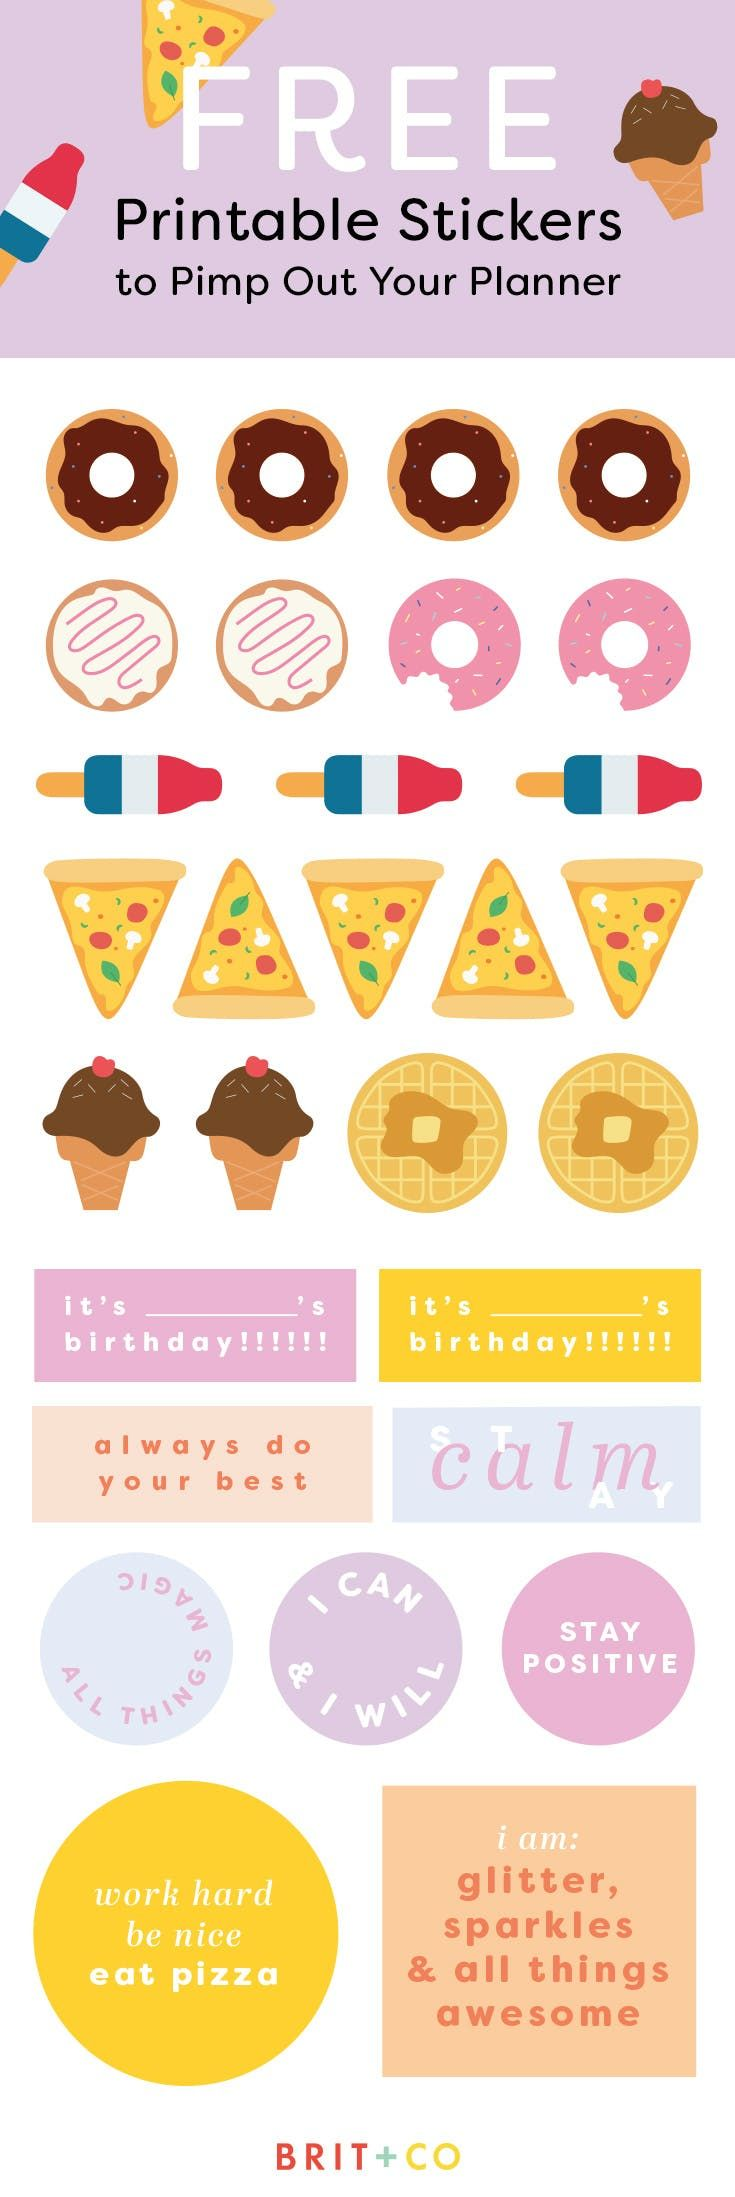 Add Personality to Your Planner With These Free Printable Stickers | Brit + Co